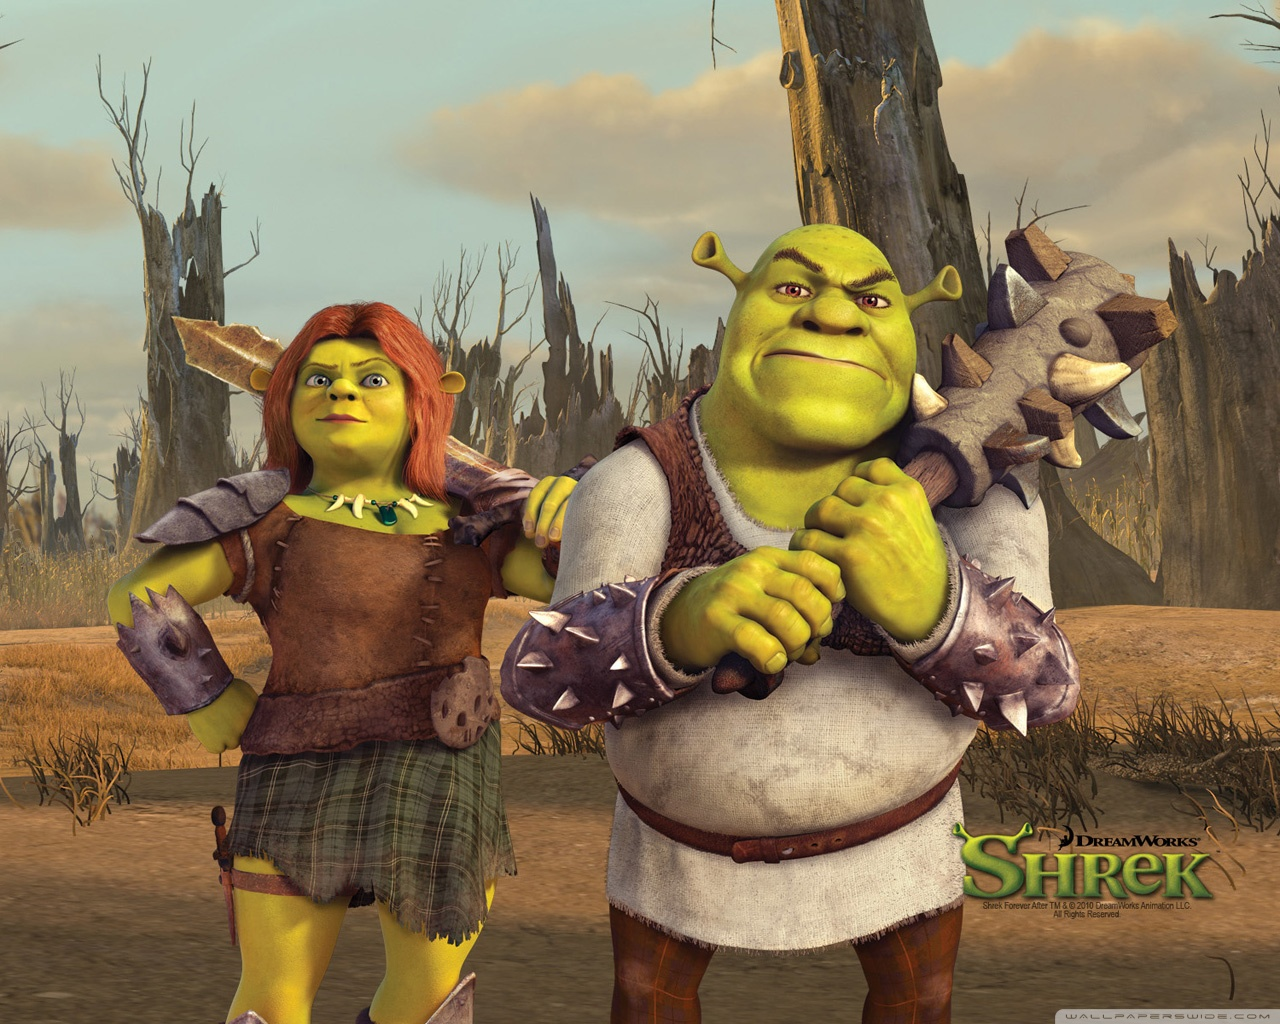 http://1.bp.blogspot.com/_kUXFY_PvRw0/TAKLczXth1I/AAAAAAAAA4s/hWUNbU_iAsg/s1600/shrek_and_fiona_shrek_the_final_chapter-1280x1024.jpg